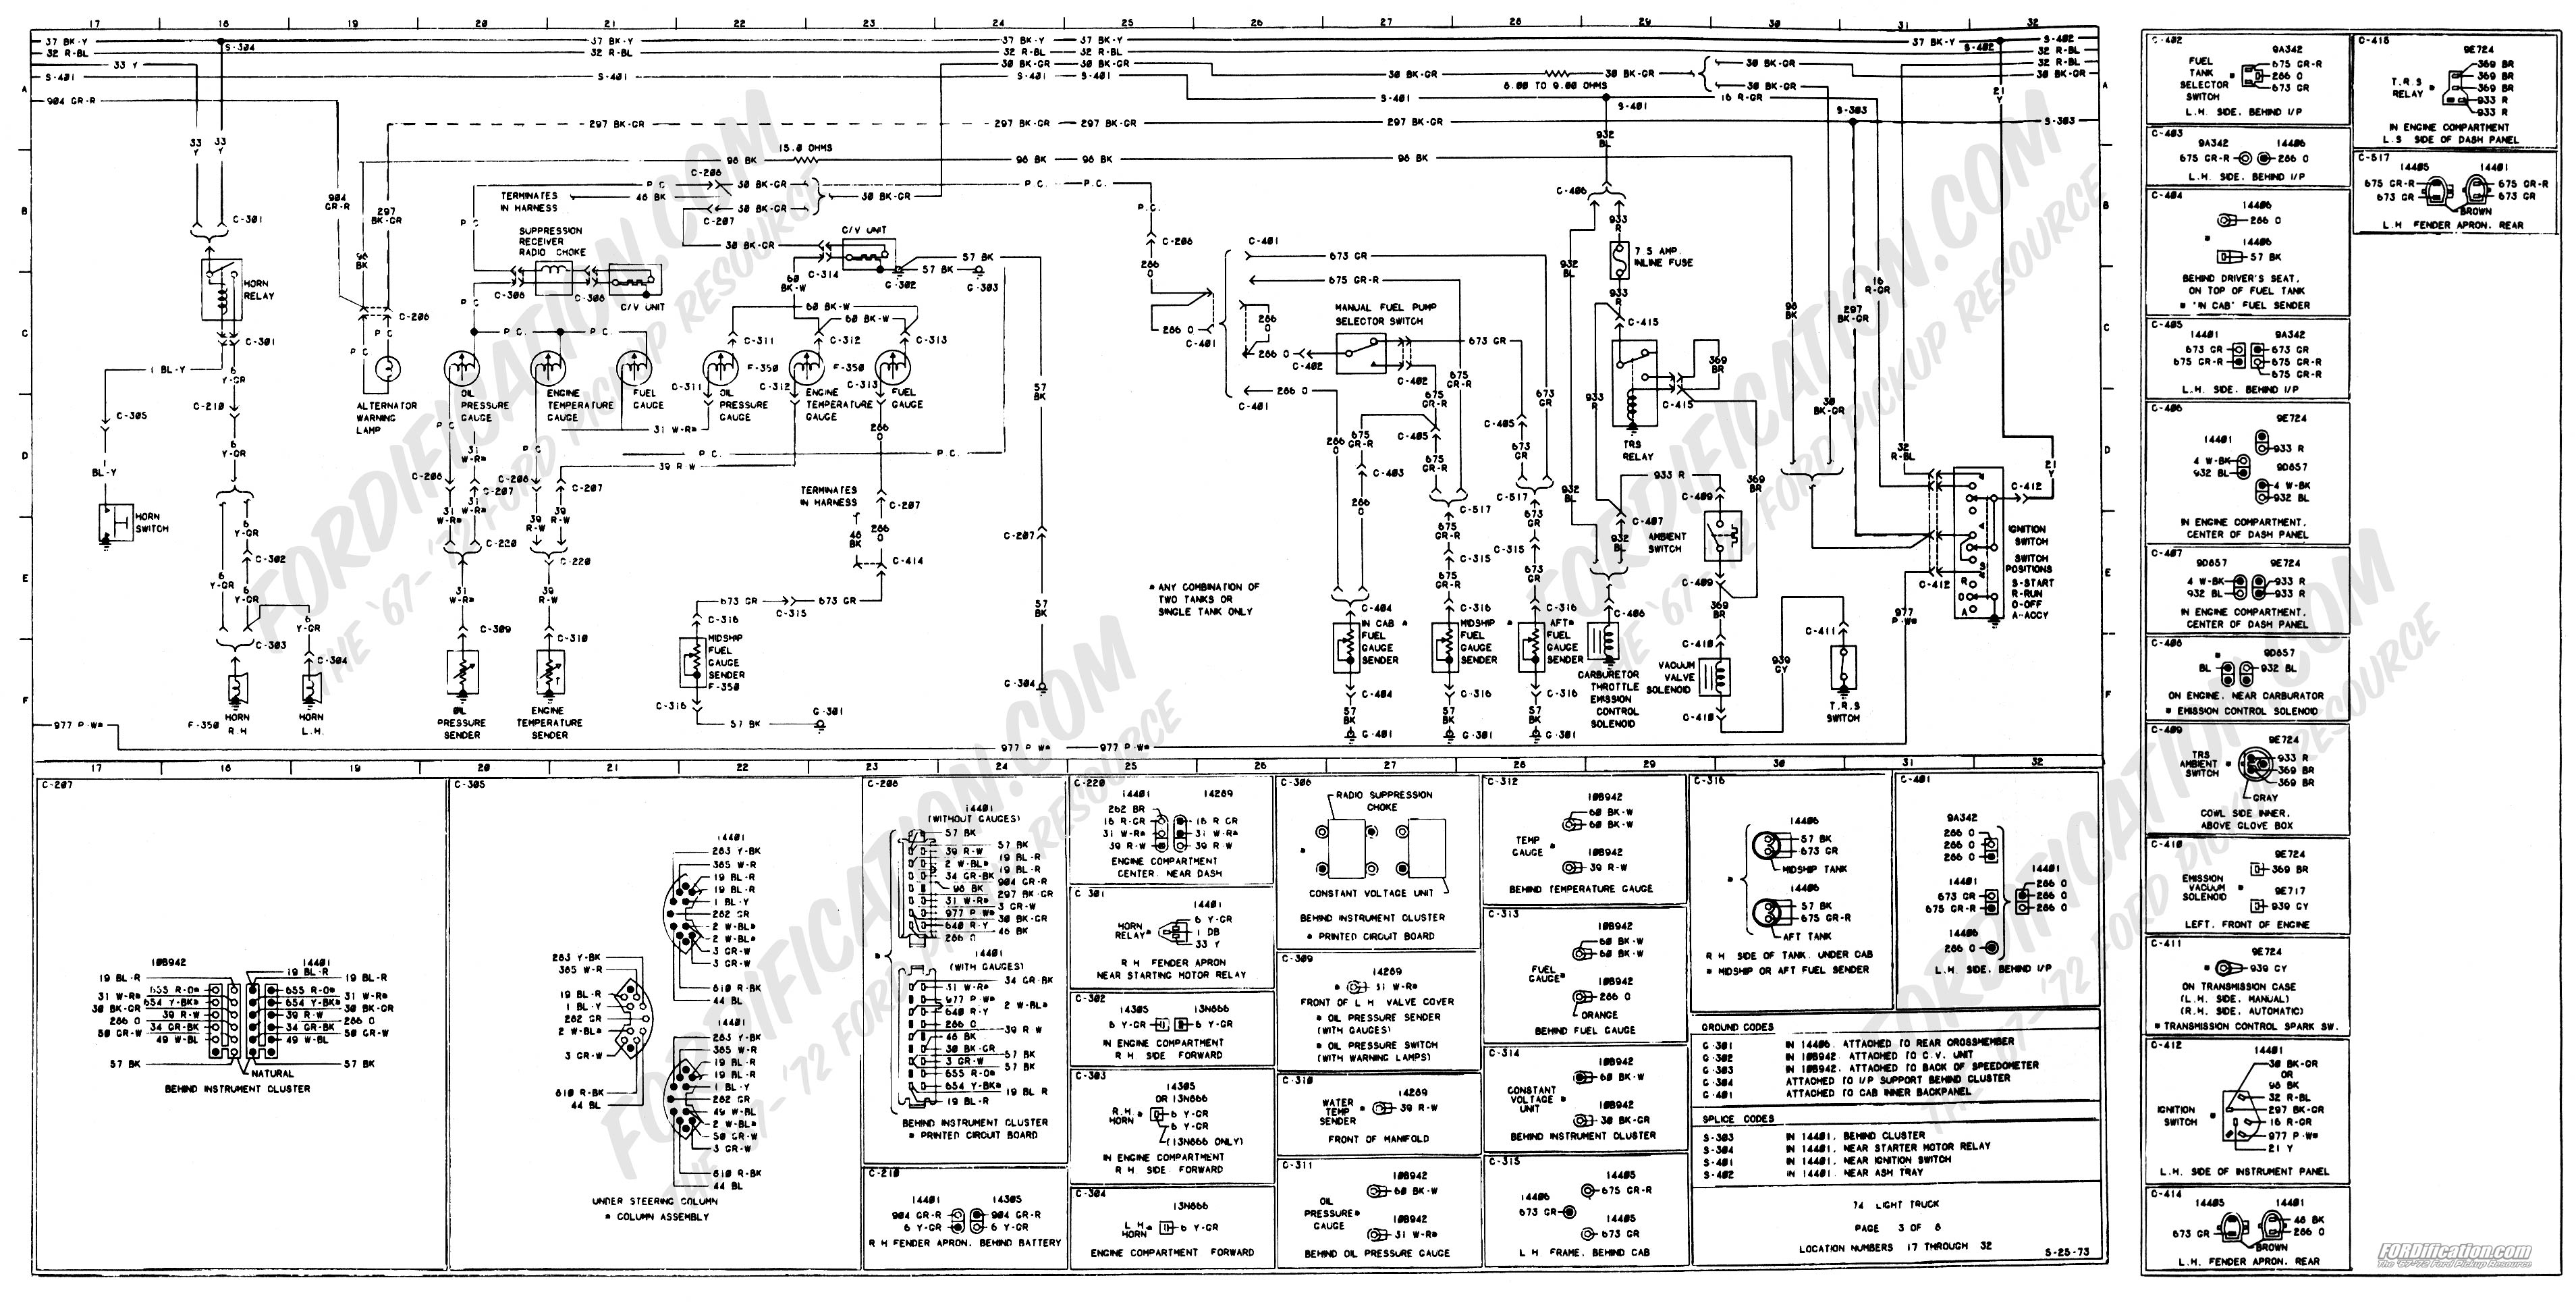 Fantastic 1978 Ford Pickup Wiring Diagram Wiring Diagram Libraries Wiring Cloud Intelaidewilluminateatxorg